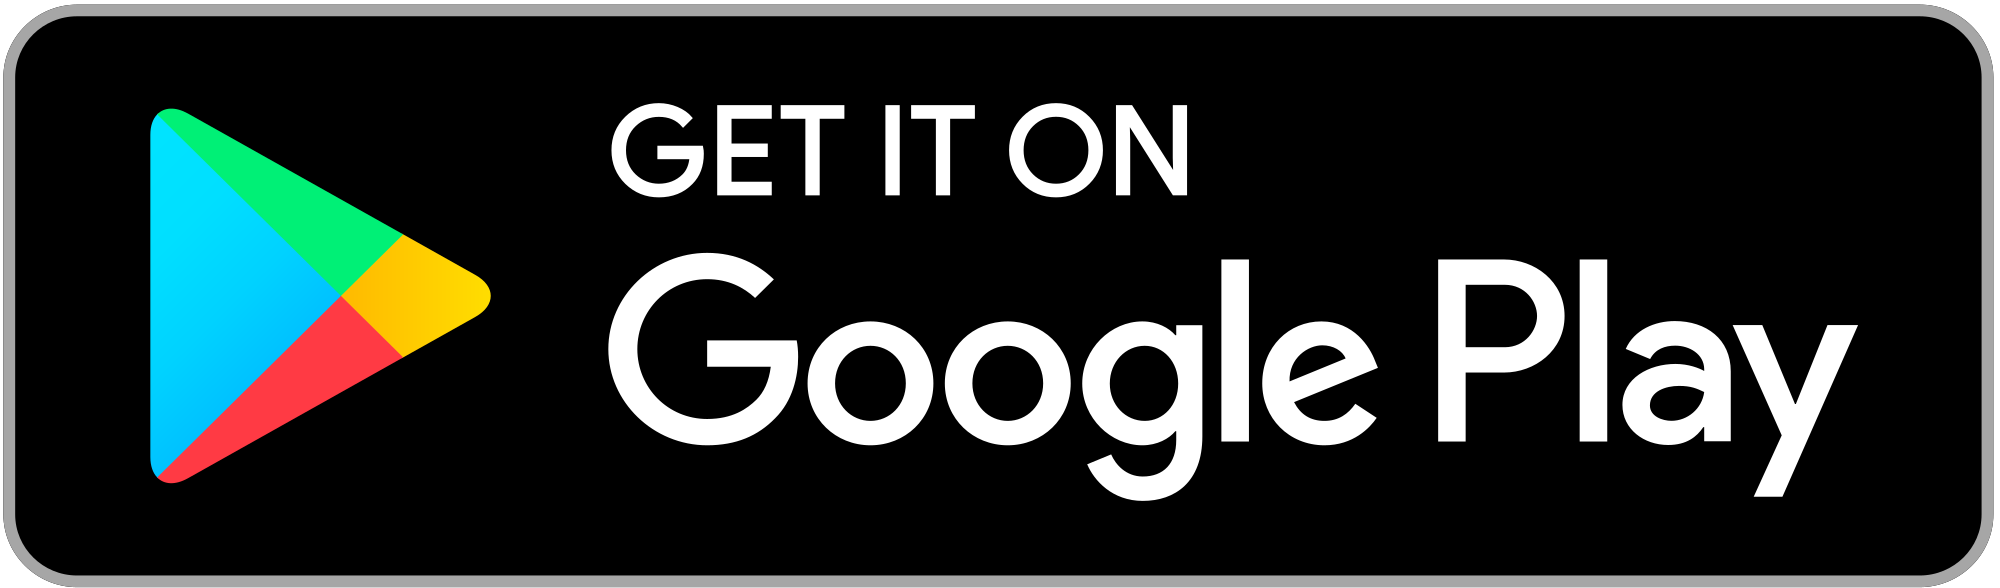 2000px-Get_it_on_Google_play.svg.png